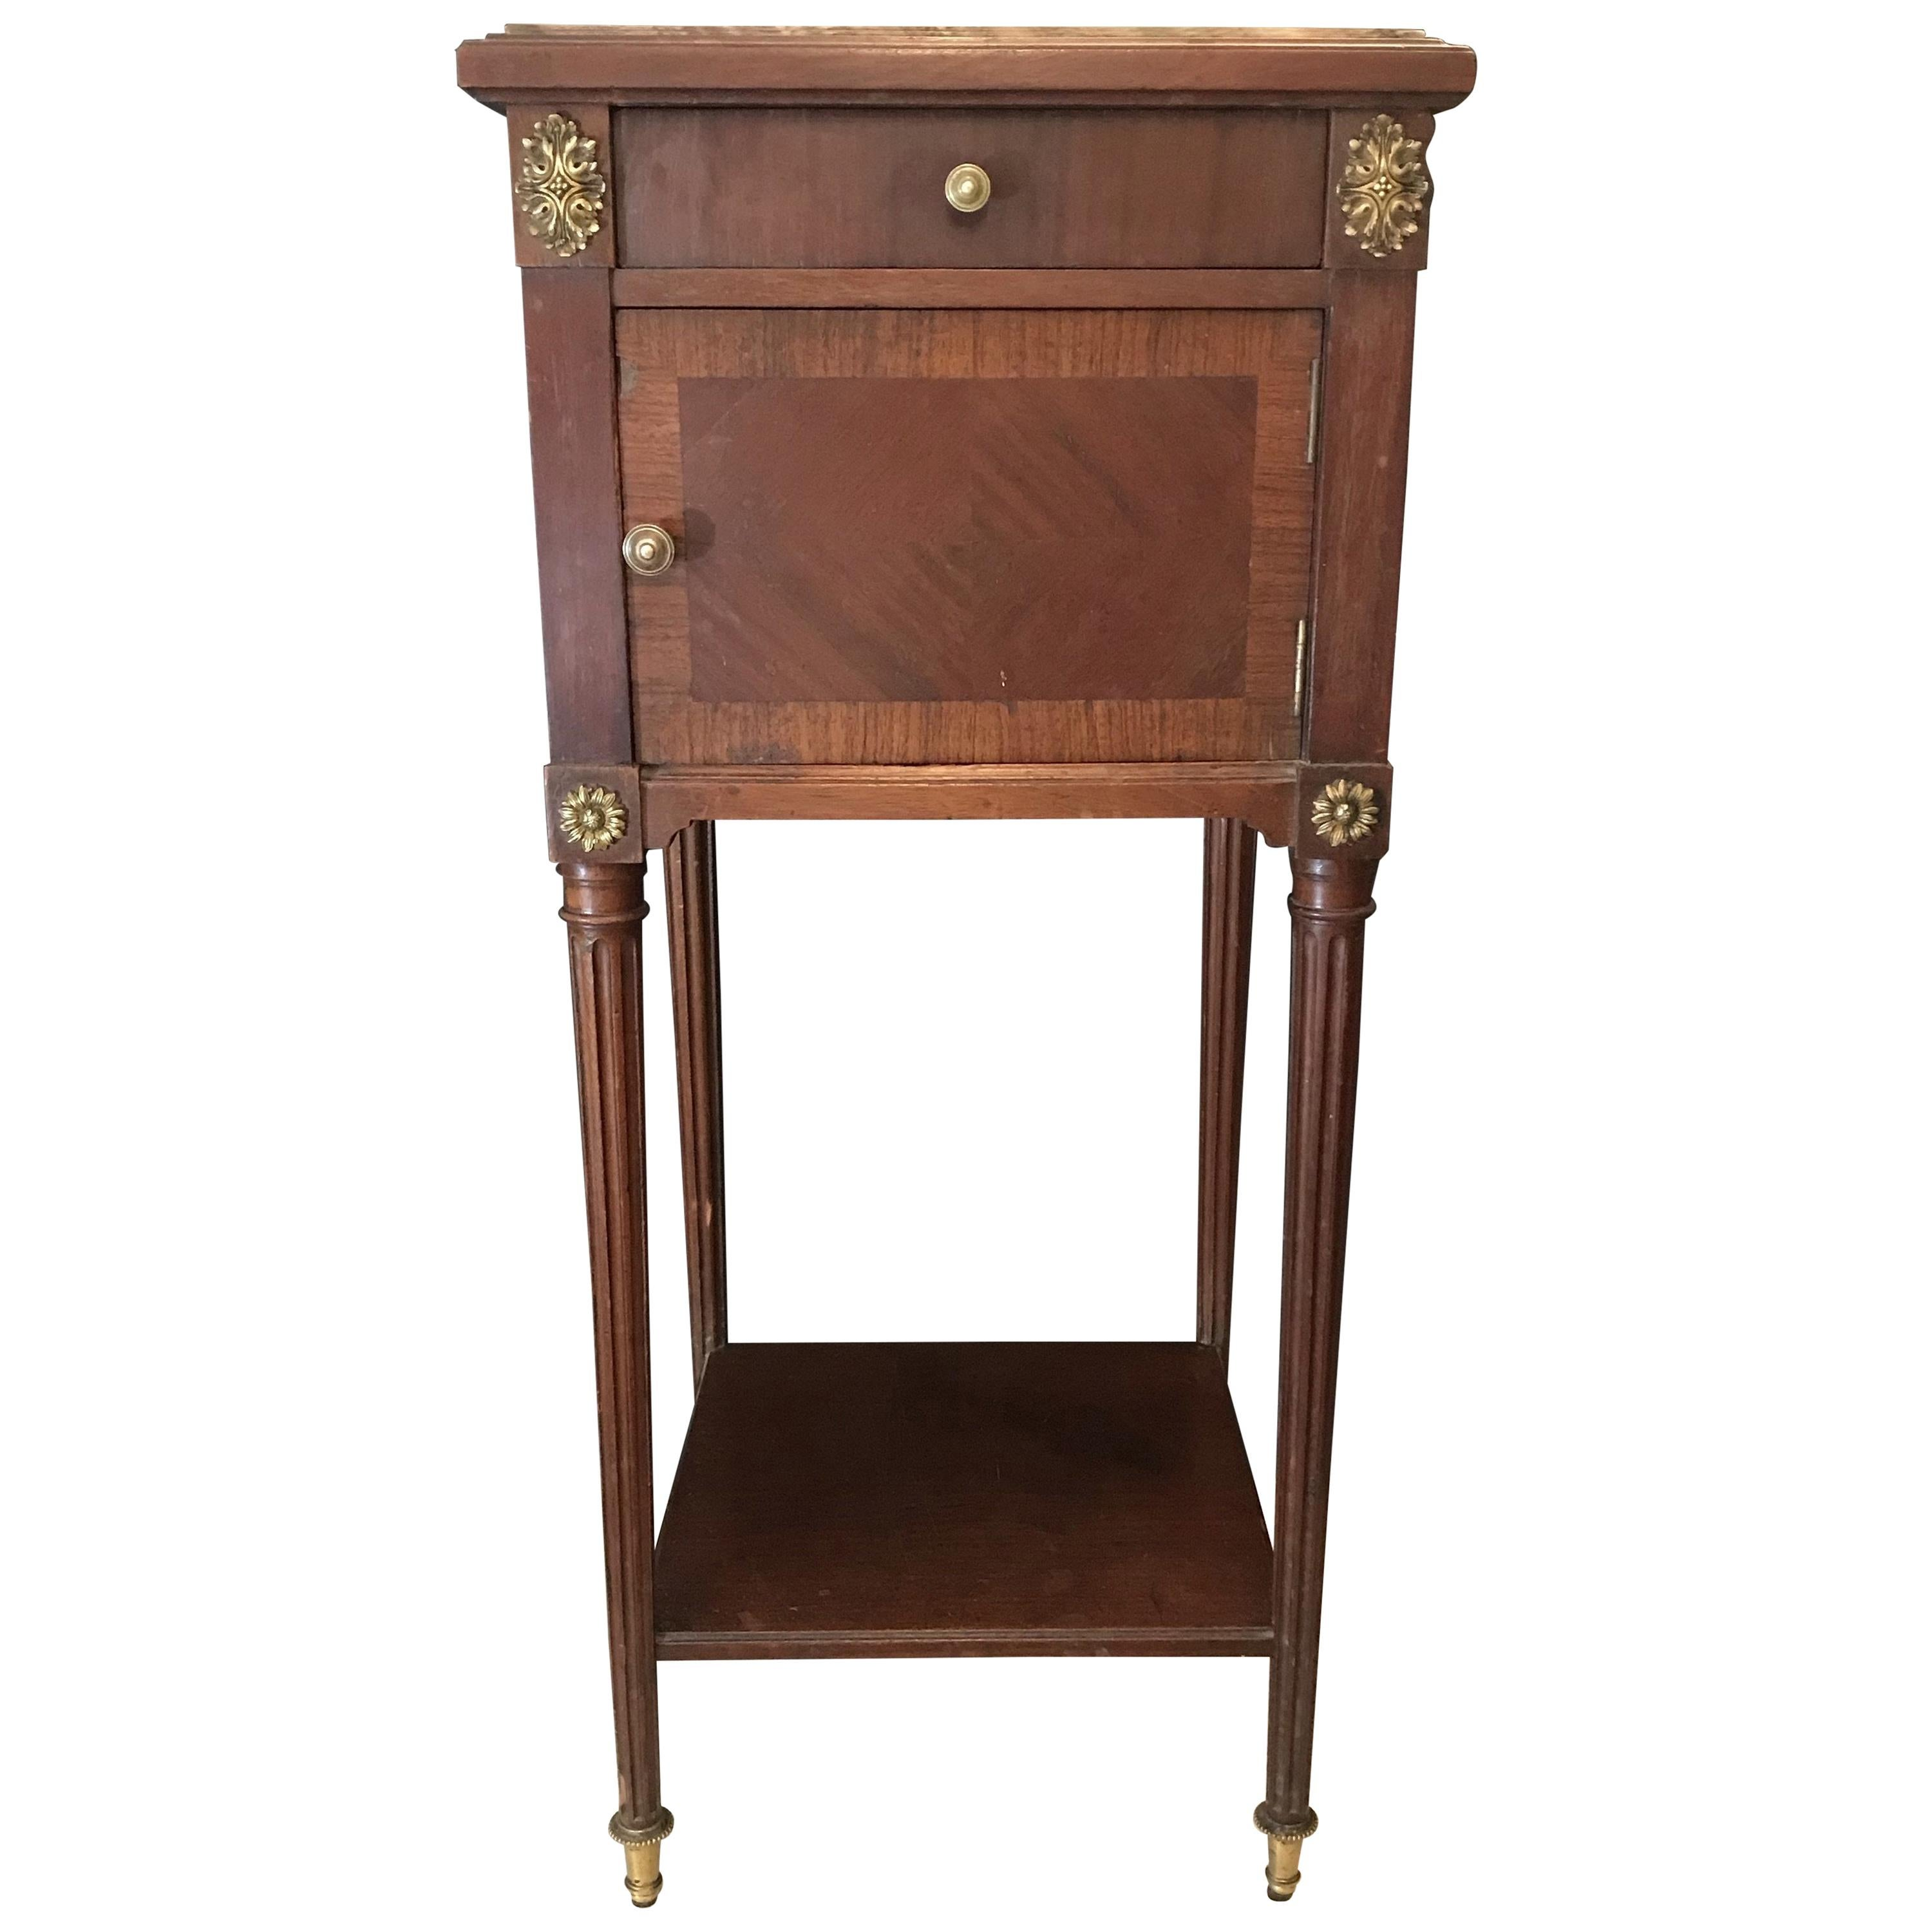 Smart French Louis XVI Nightstand or Side Table with Carrera Marble Top